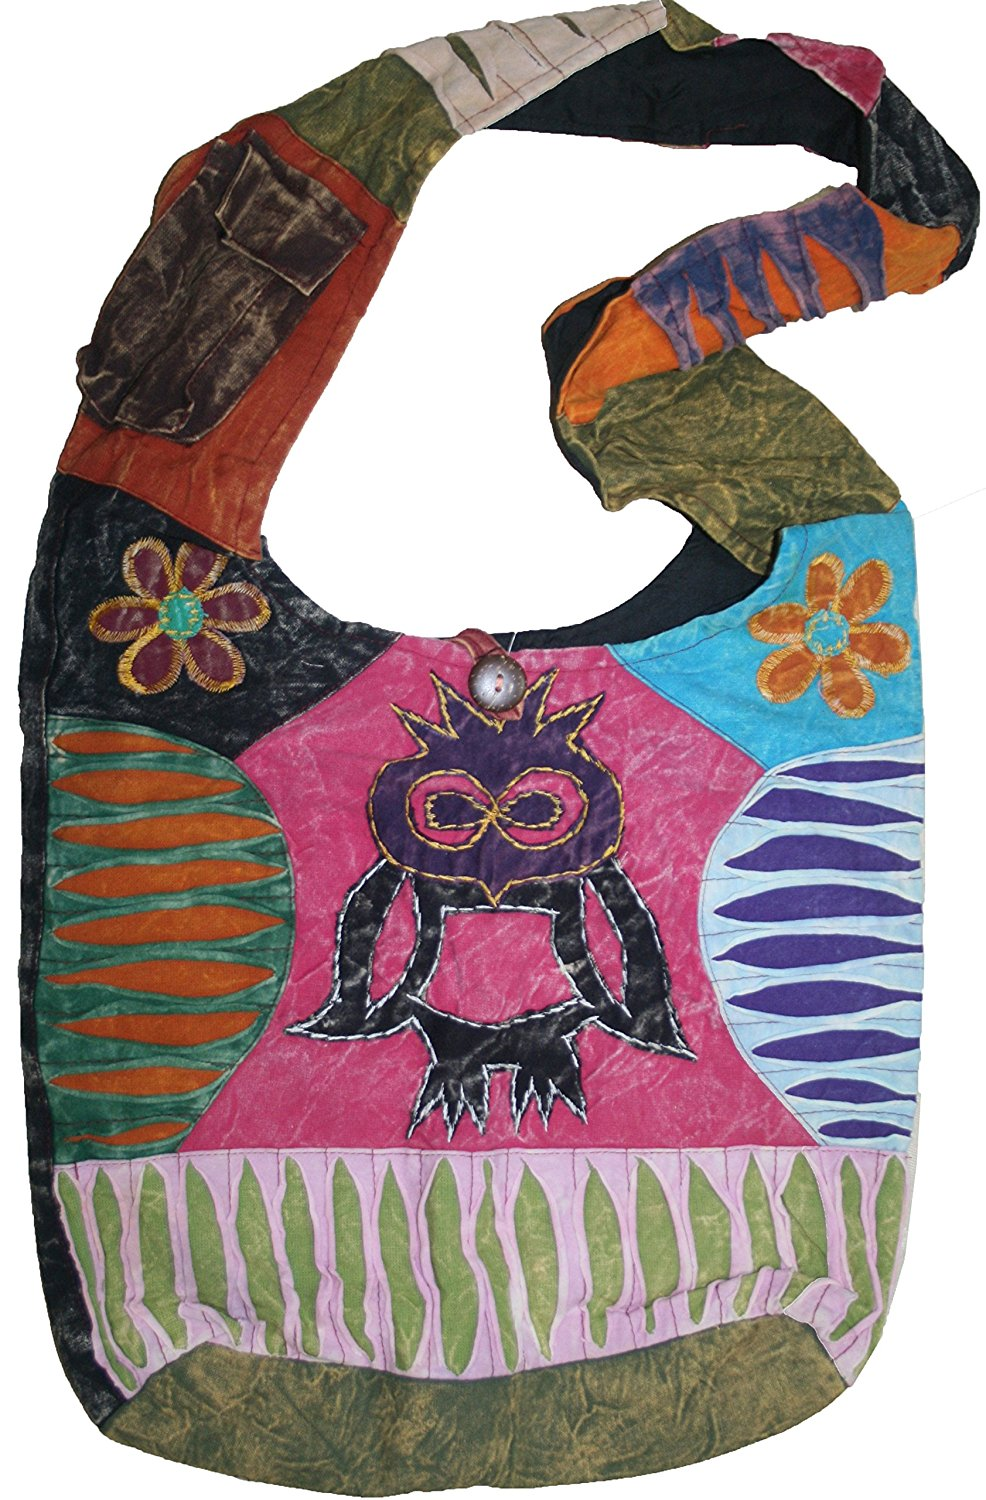 JSA 02 Owl Patch Cotton Boho Cross Shoulder Bag Purse - Agan Traders, Multi 4